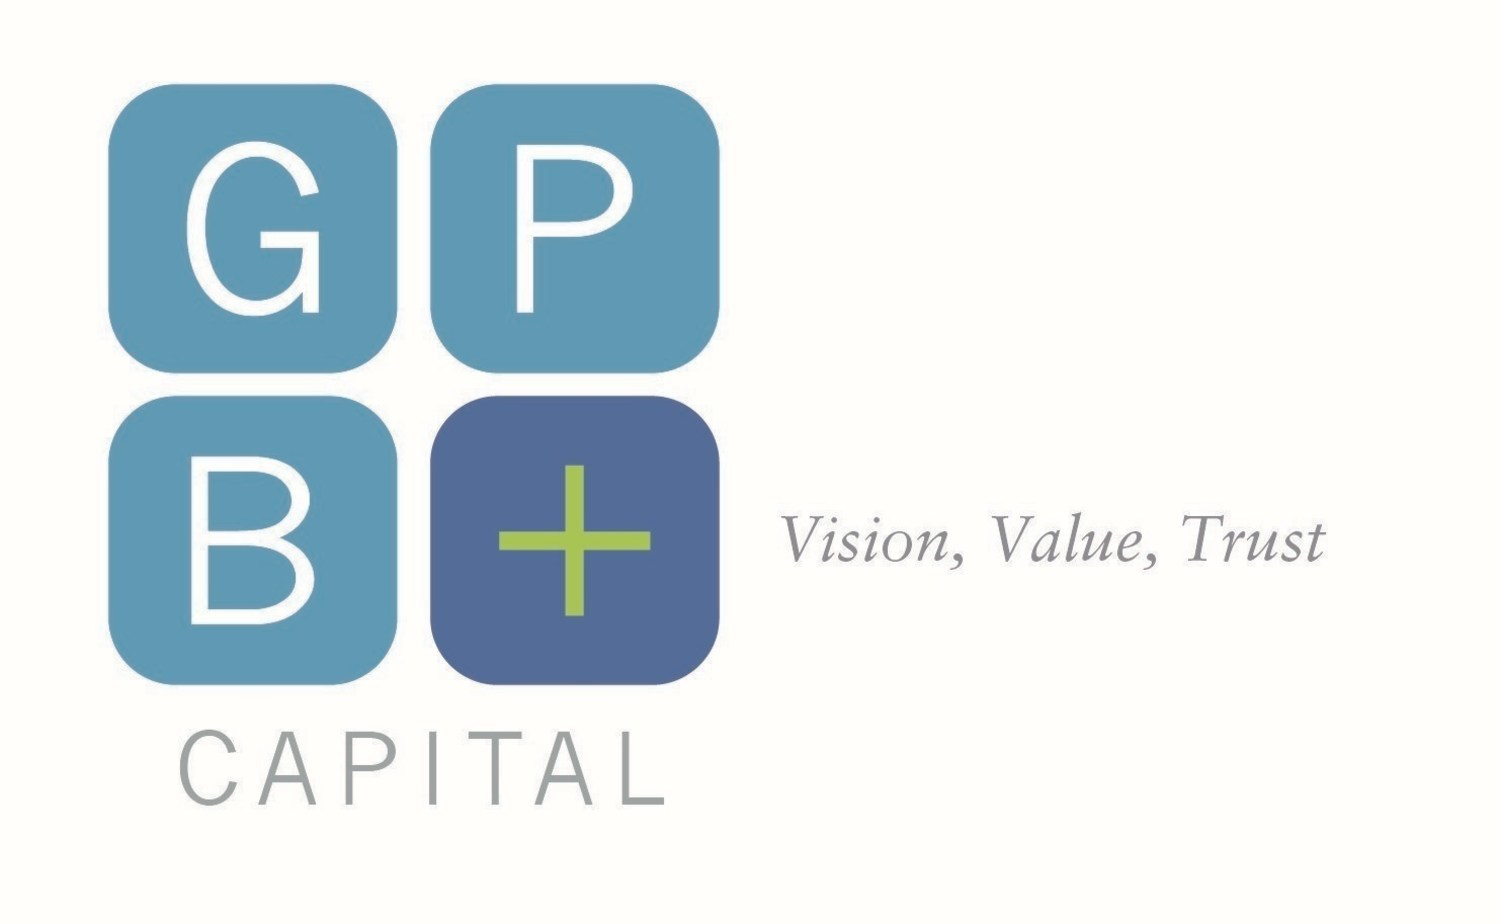 GPB Capital is a New York-based alternative asset management firm focusing on acquiring income-producing private companies. (PRNewsfoto/GPB Capital Holdings, LLC)